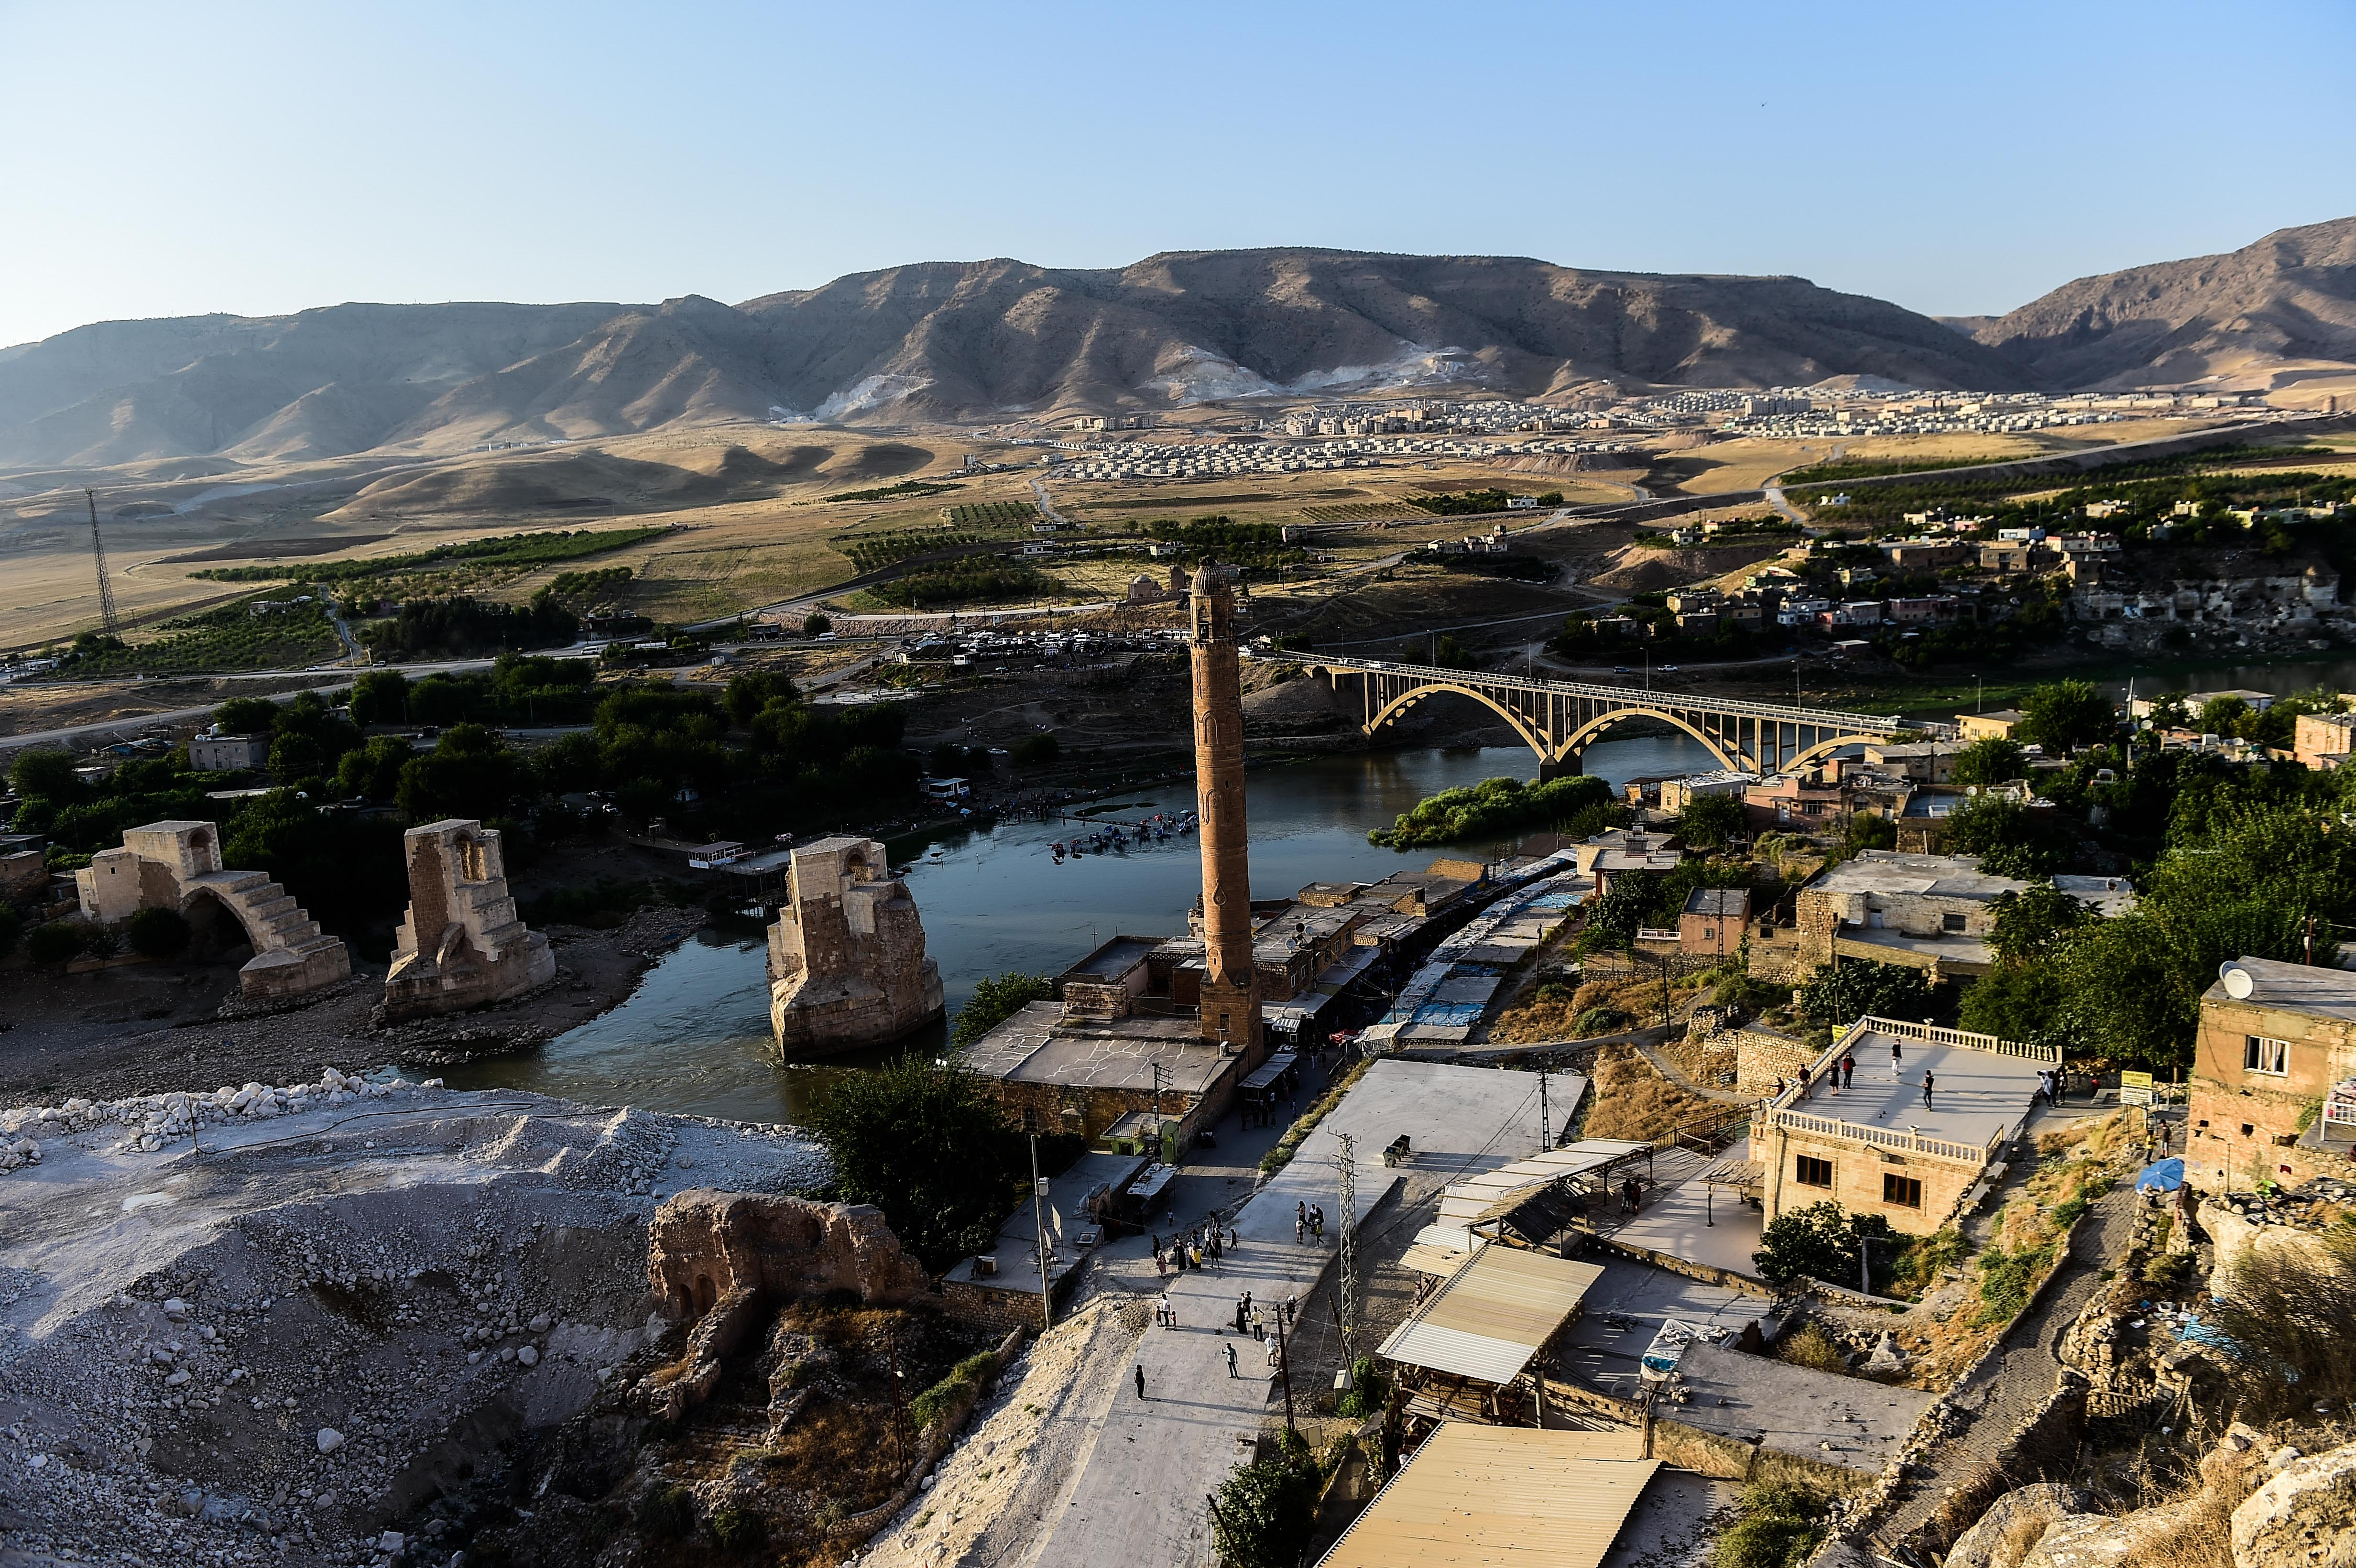 An ancient Turkish town with thousands of residents is weeks